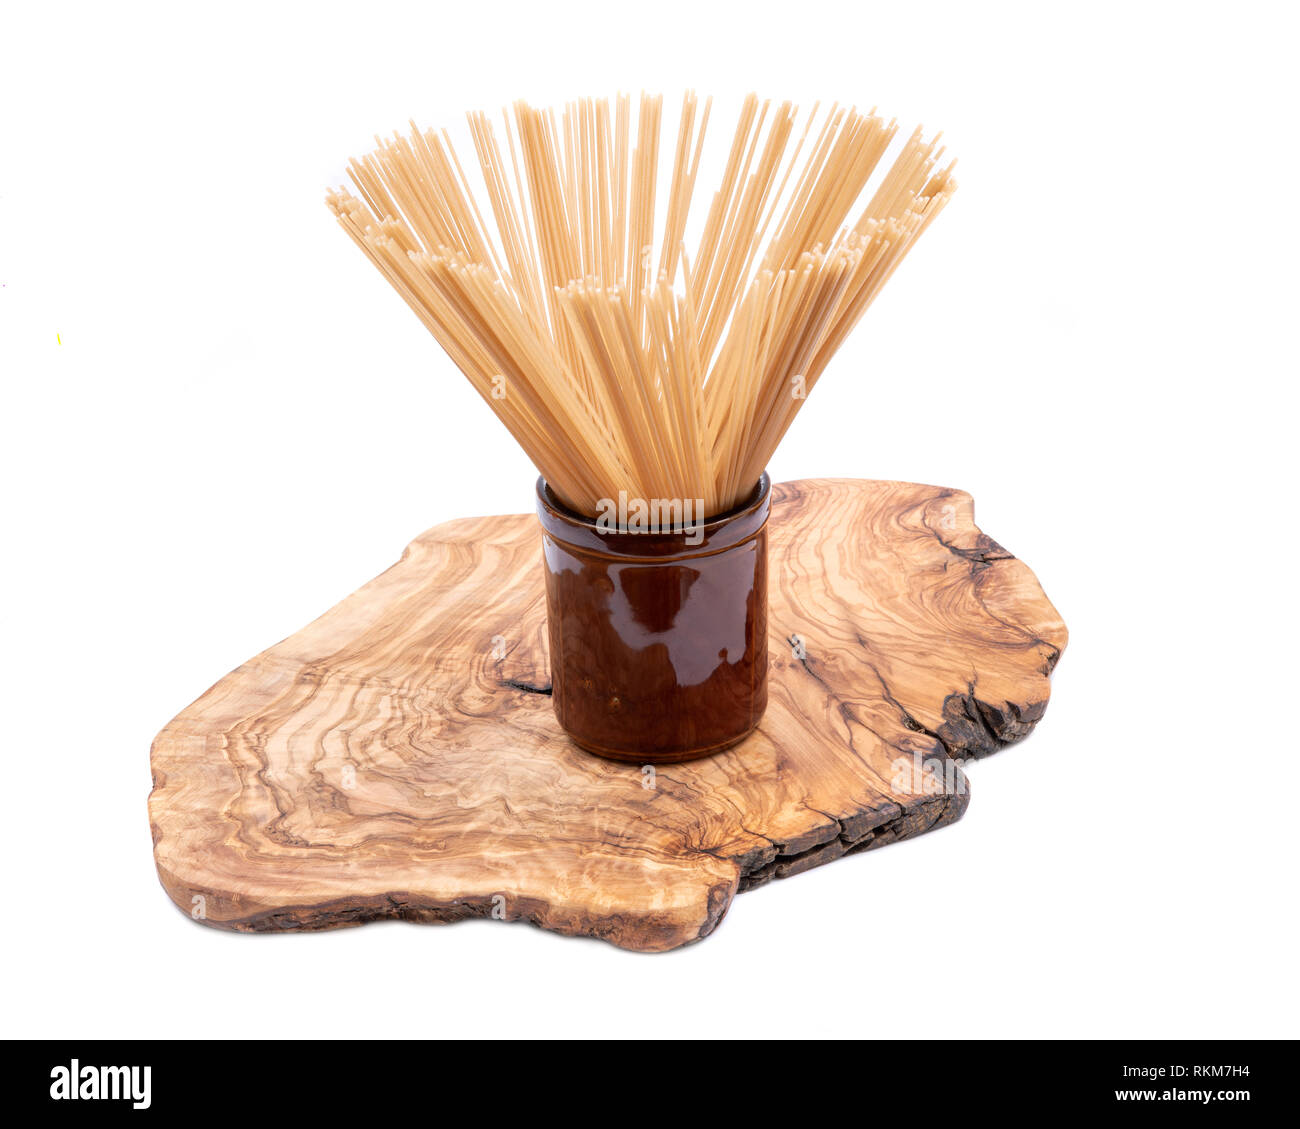 Organic uncooked Brown Rice Spaghetti pasta arranged in a tall round